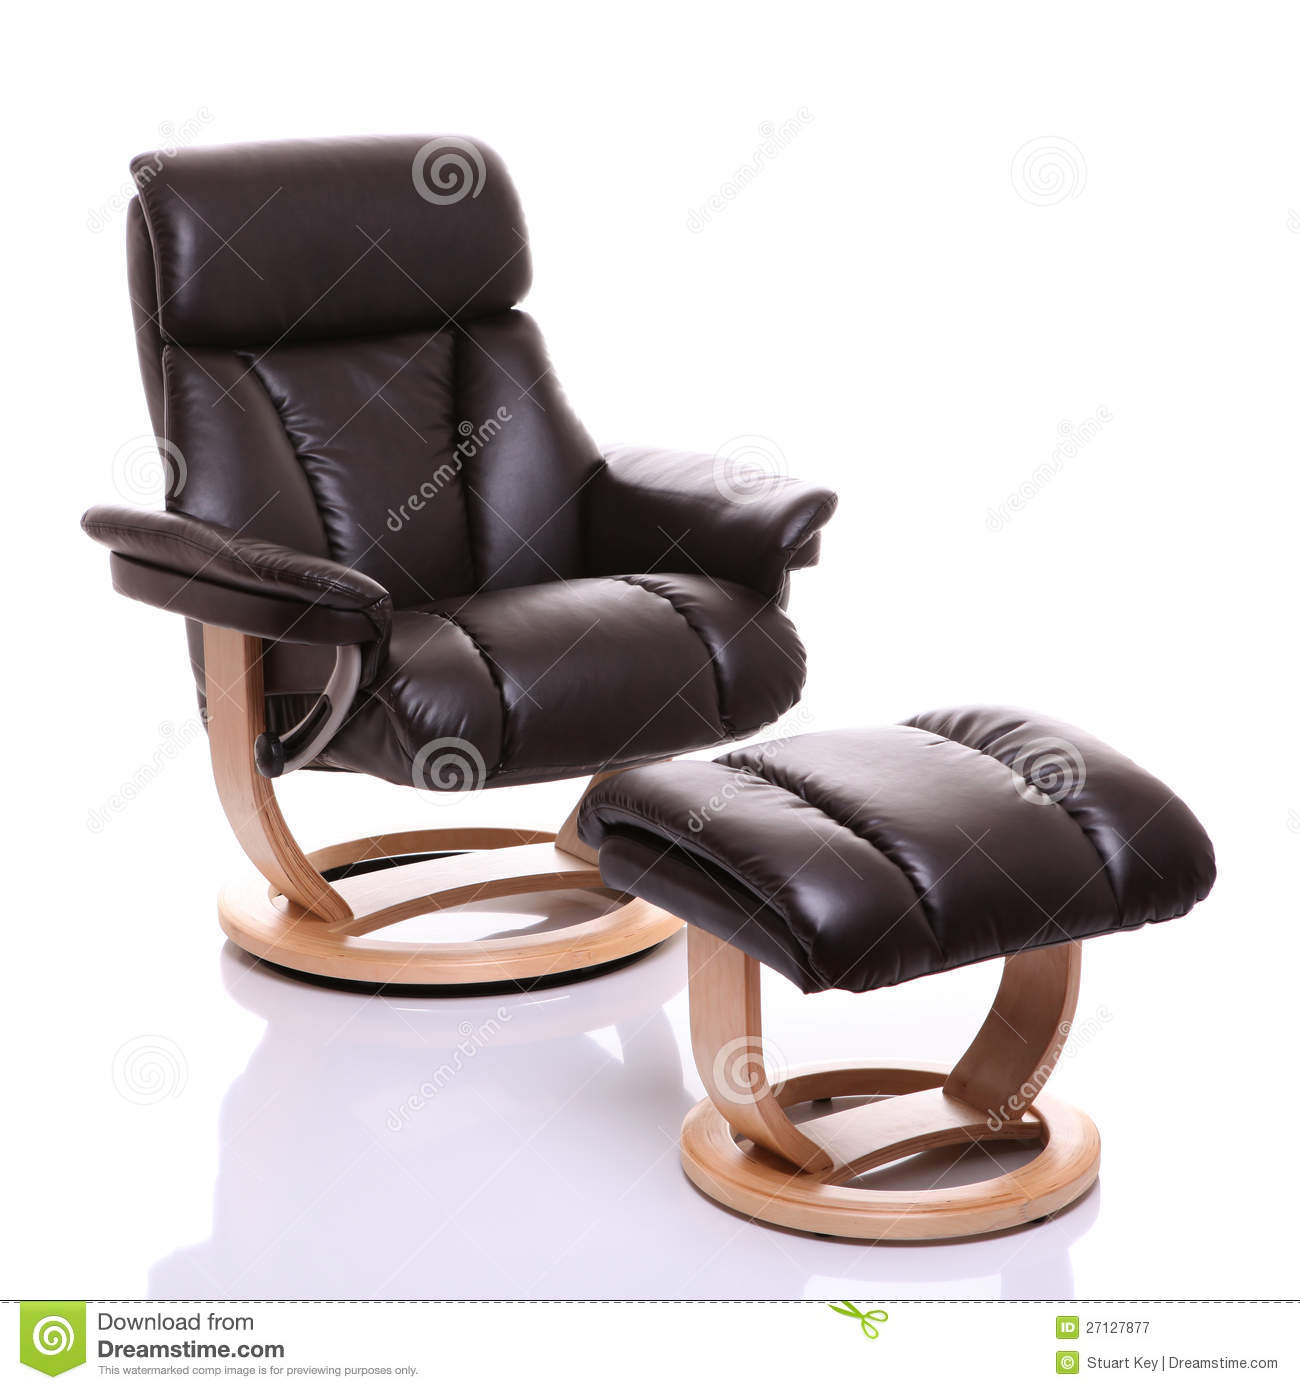 Royalty-Free Stock Photo. Download Luxurious Leather Recliner Chair With Footstool ...  sc 1 st  Dreamstime.com & Luxurious Leather Recliner Chair With Footstool Royalty Free Stock ... islam-shia.org